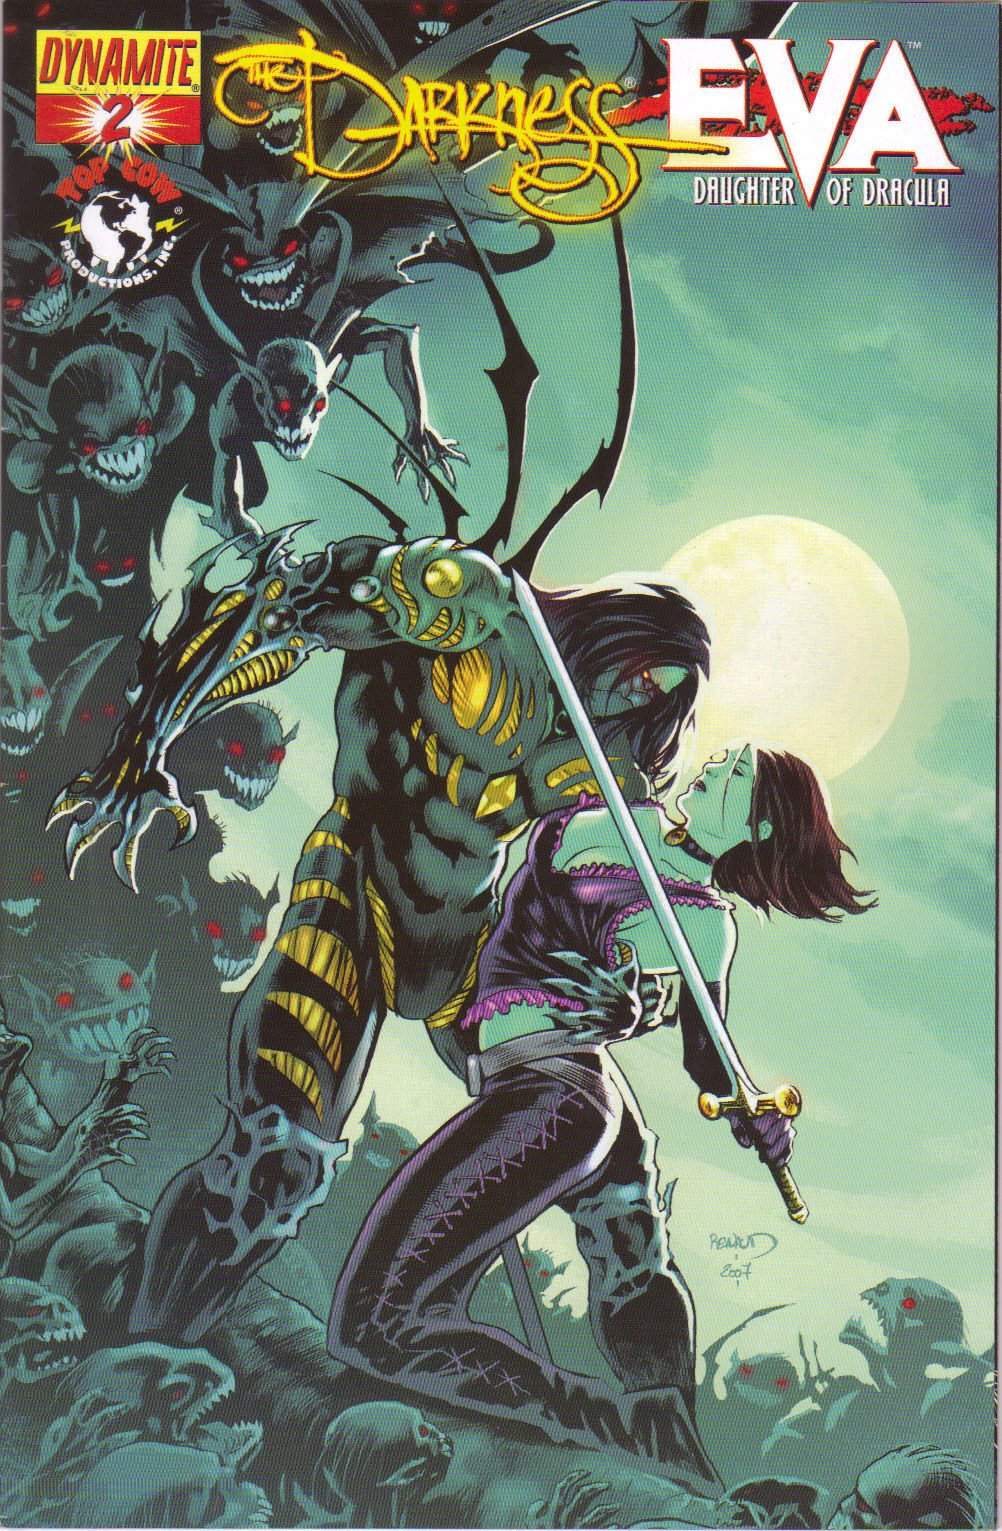 Read Online The Darkness #2 (The Darkness vs. Eva daughter of dracula, cover A) ebook